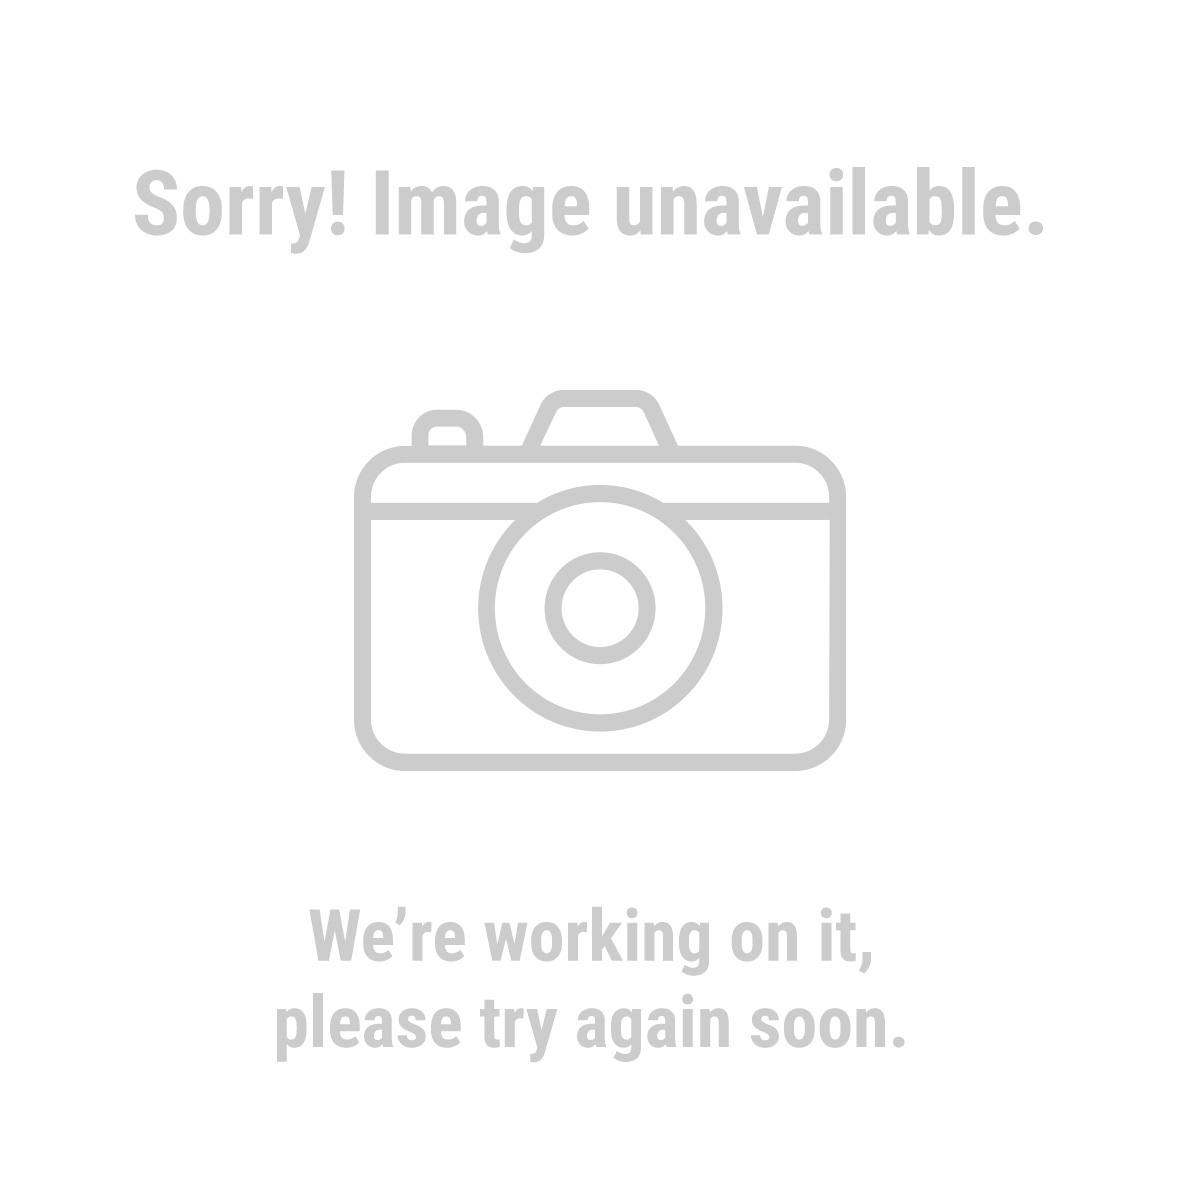 Western Safety 40533 Industrial Plumber's Gloves